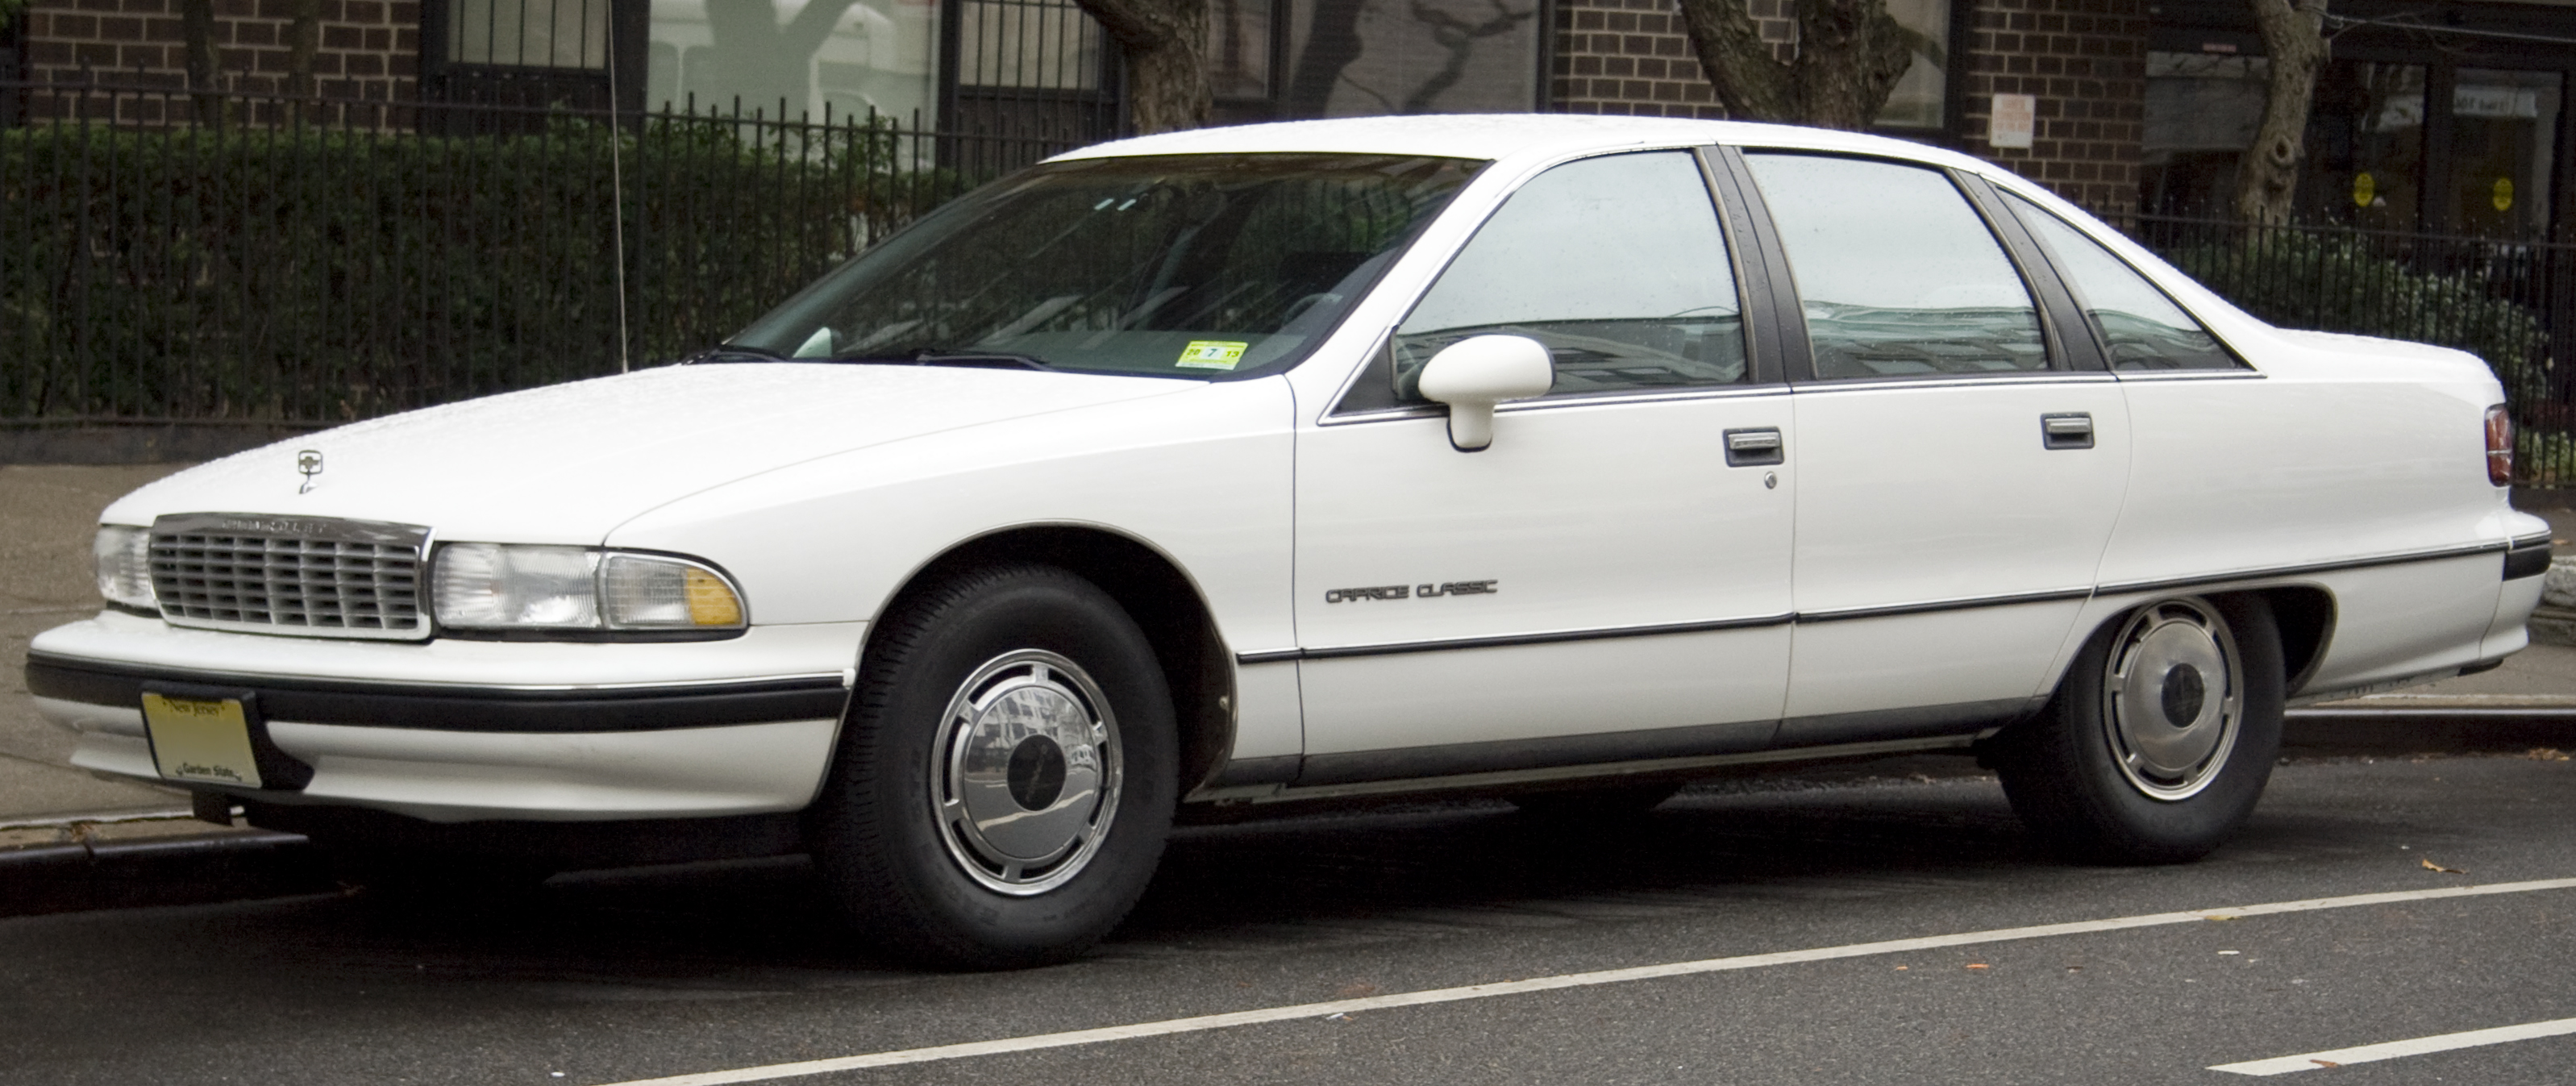 File:1991 Chevrolet Caprice Classic.jpg  Wikimedia Commons